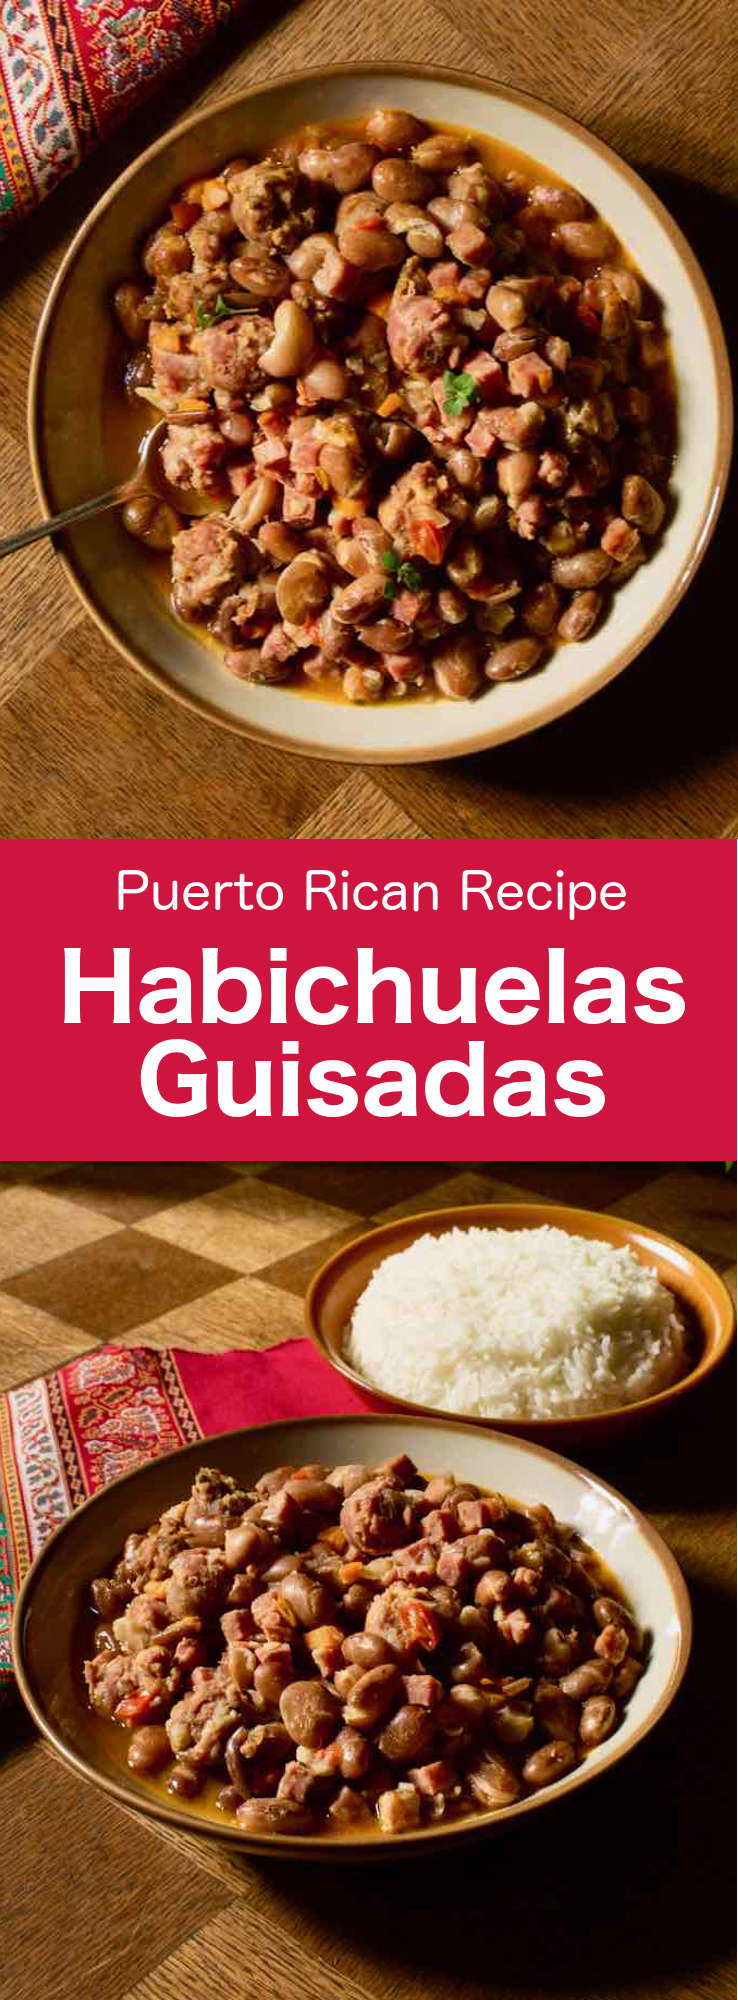 Habichuelas guisadas are a delicious traditional Puerto Rican stew made with pinto beans, pork and sofrito. #PuertoRico #PuertoRicanCuisine #PuertoRicanRecipe #PuertoRicanFood #PuertoRicanBeans #WorldCuisine #196flavors